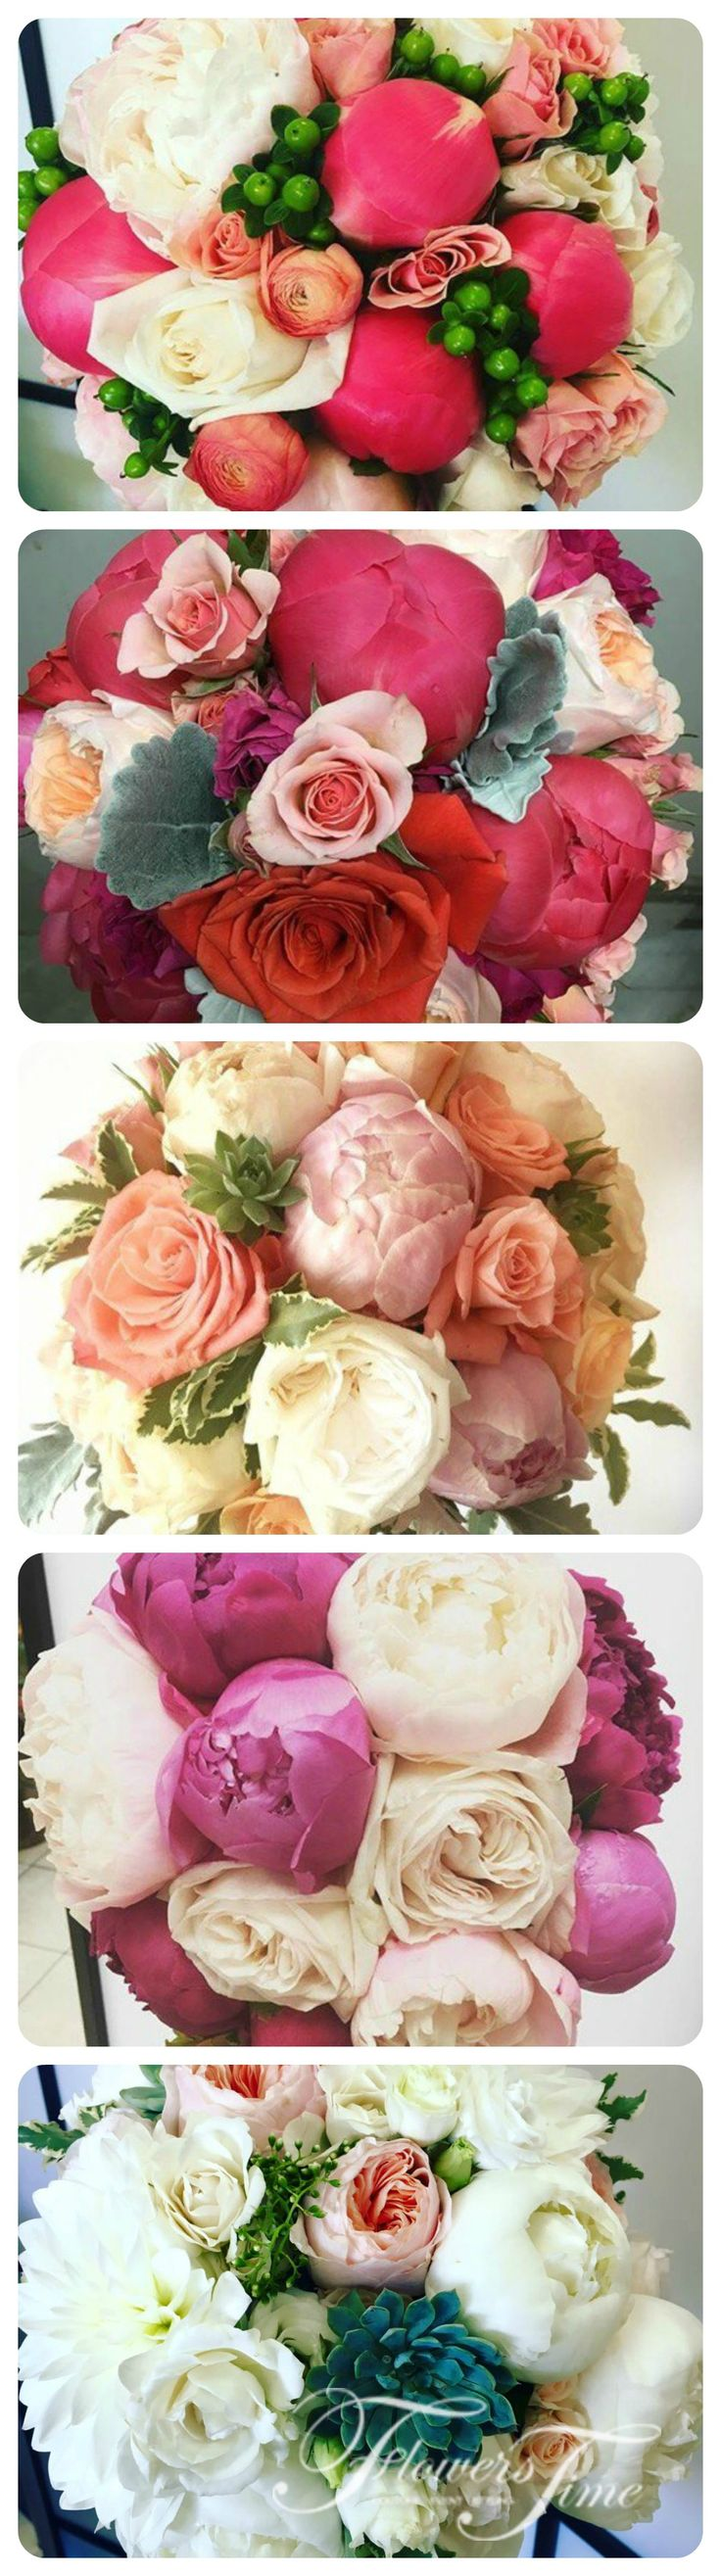 Pink colored Bridal bouquets by Flowers Time #wedding#roses#pink#collage#photocollage#roses#peony#softpink#bride